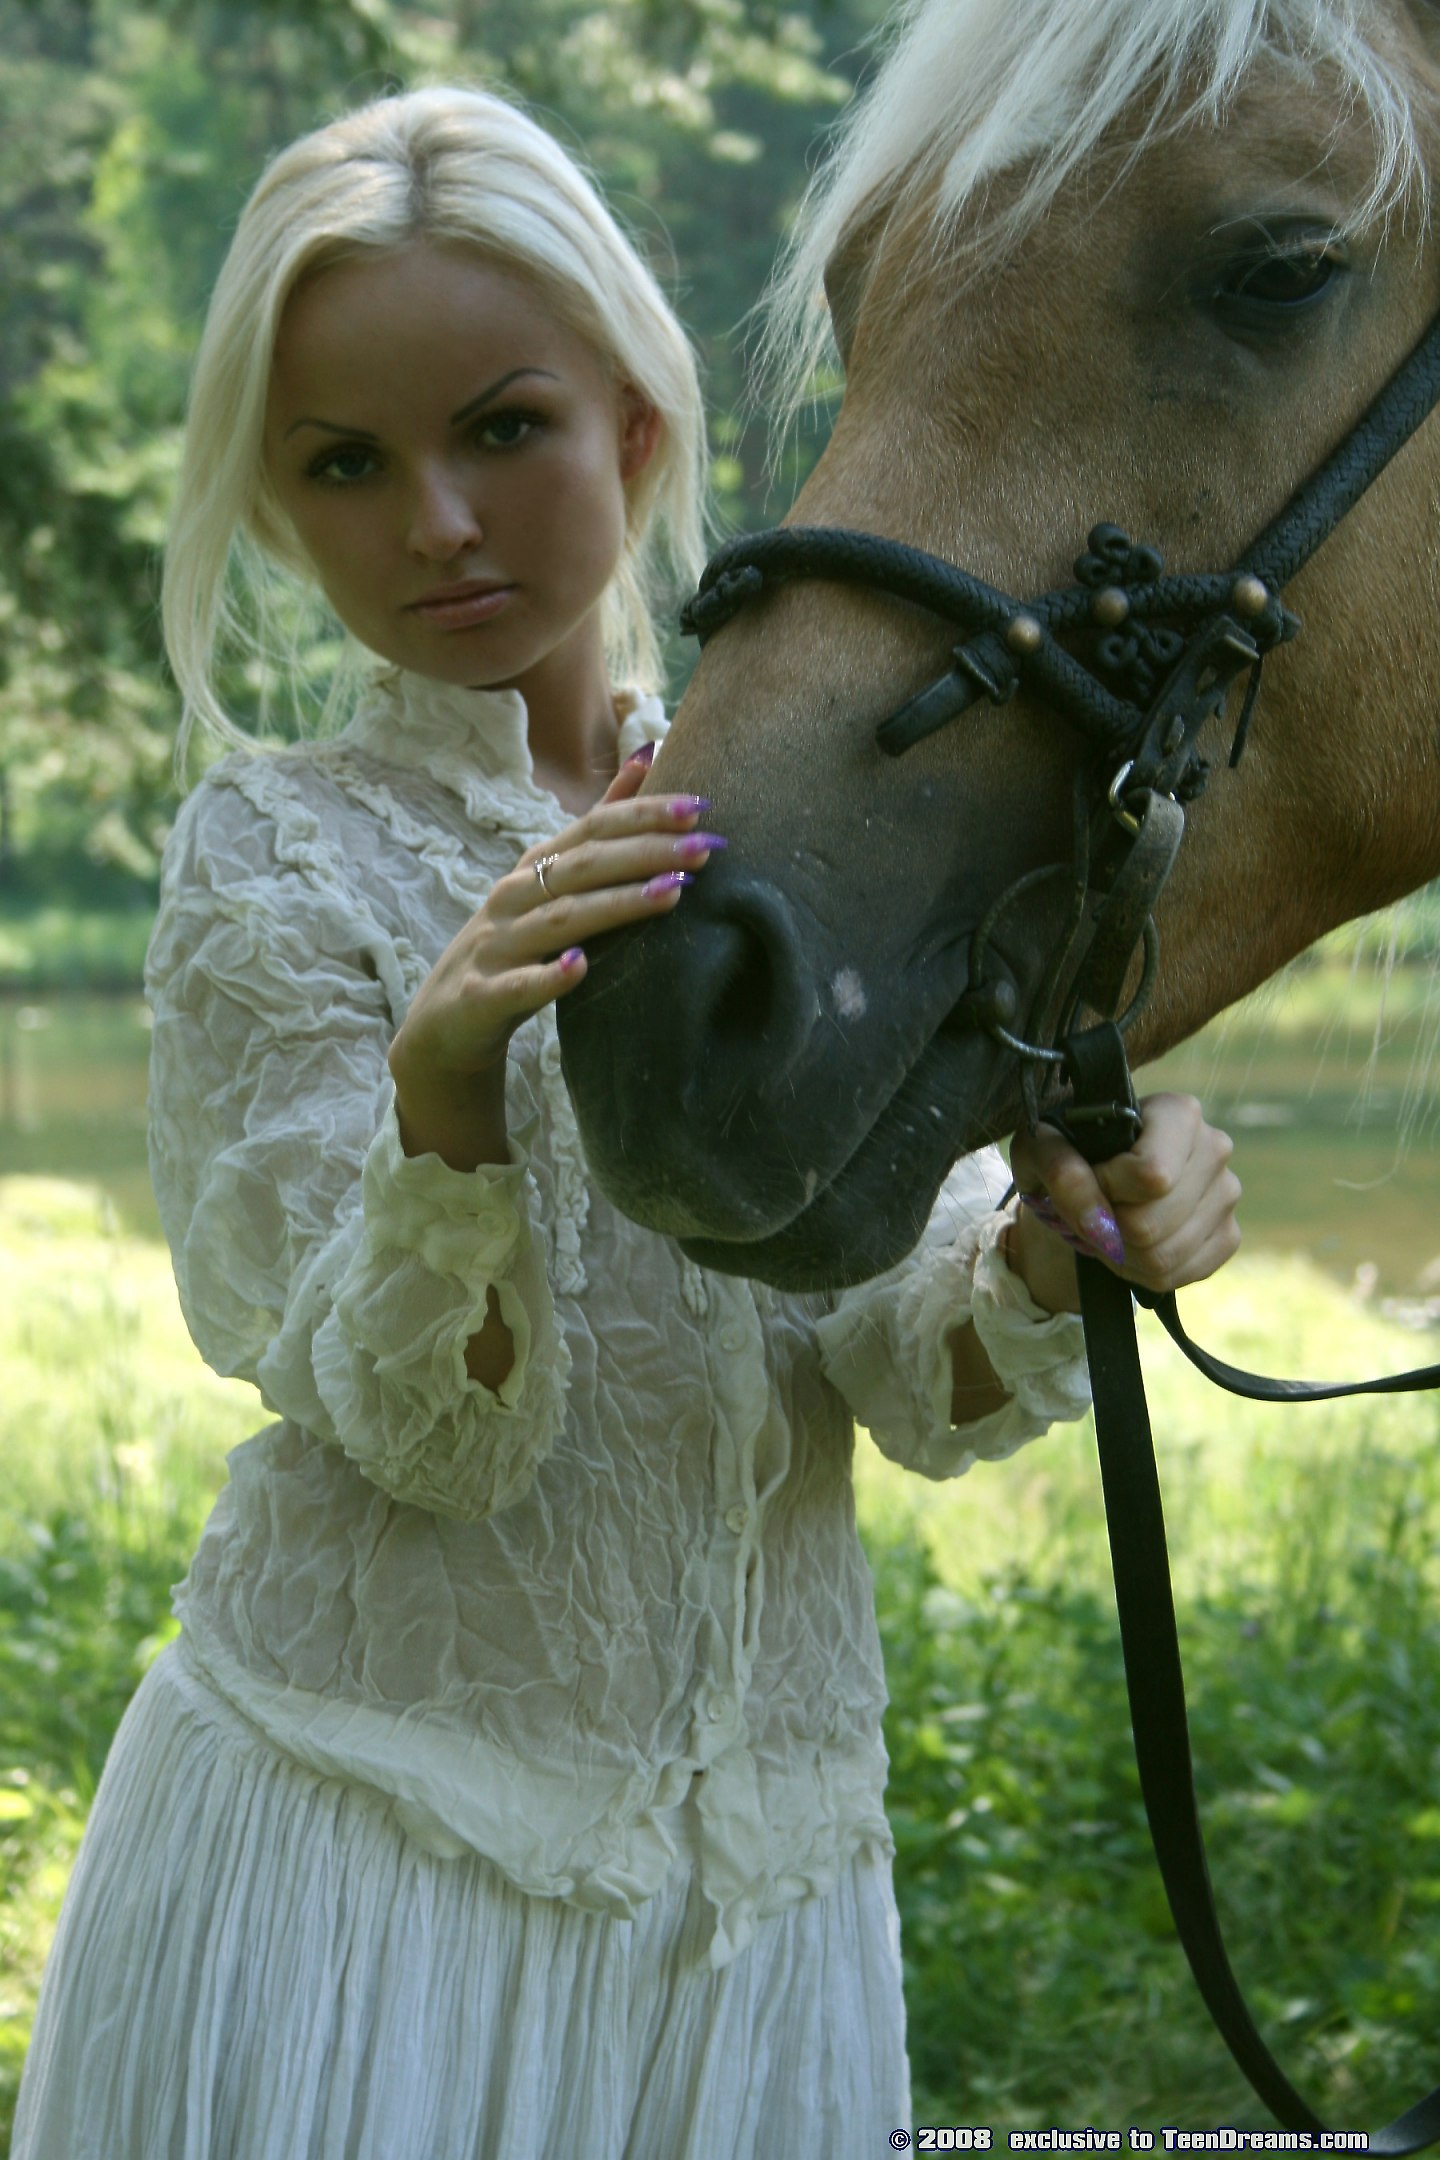 On beautiful horse girl riding nude